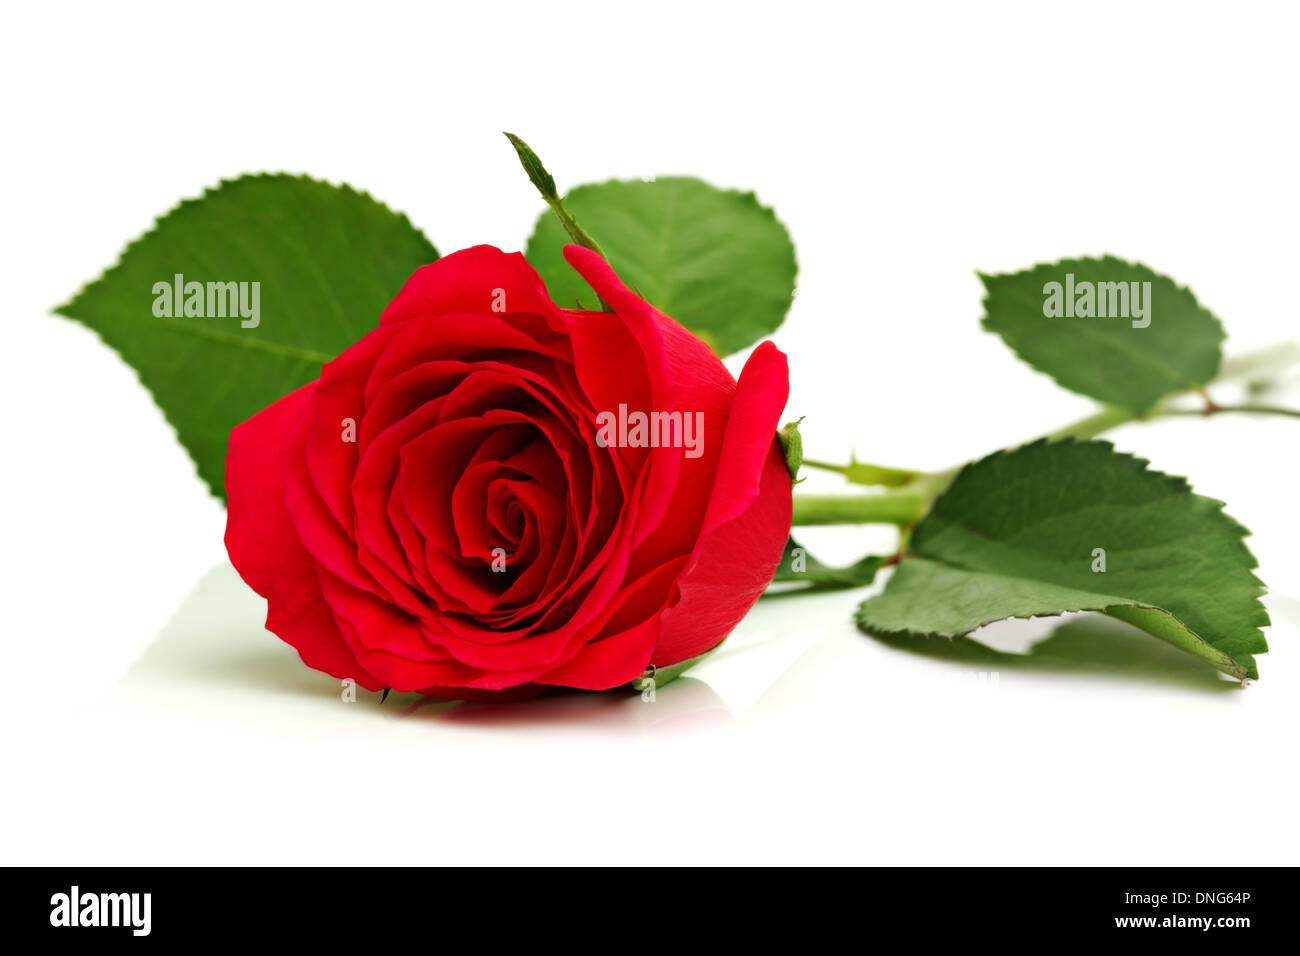 Red rose on white - Stock Image